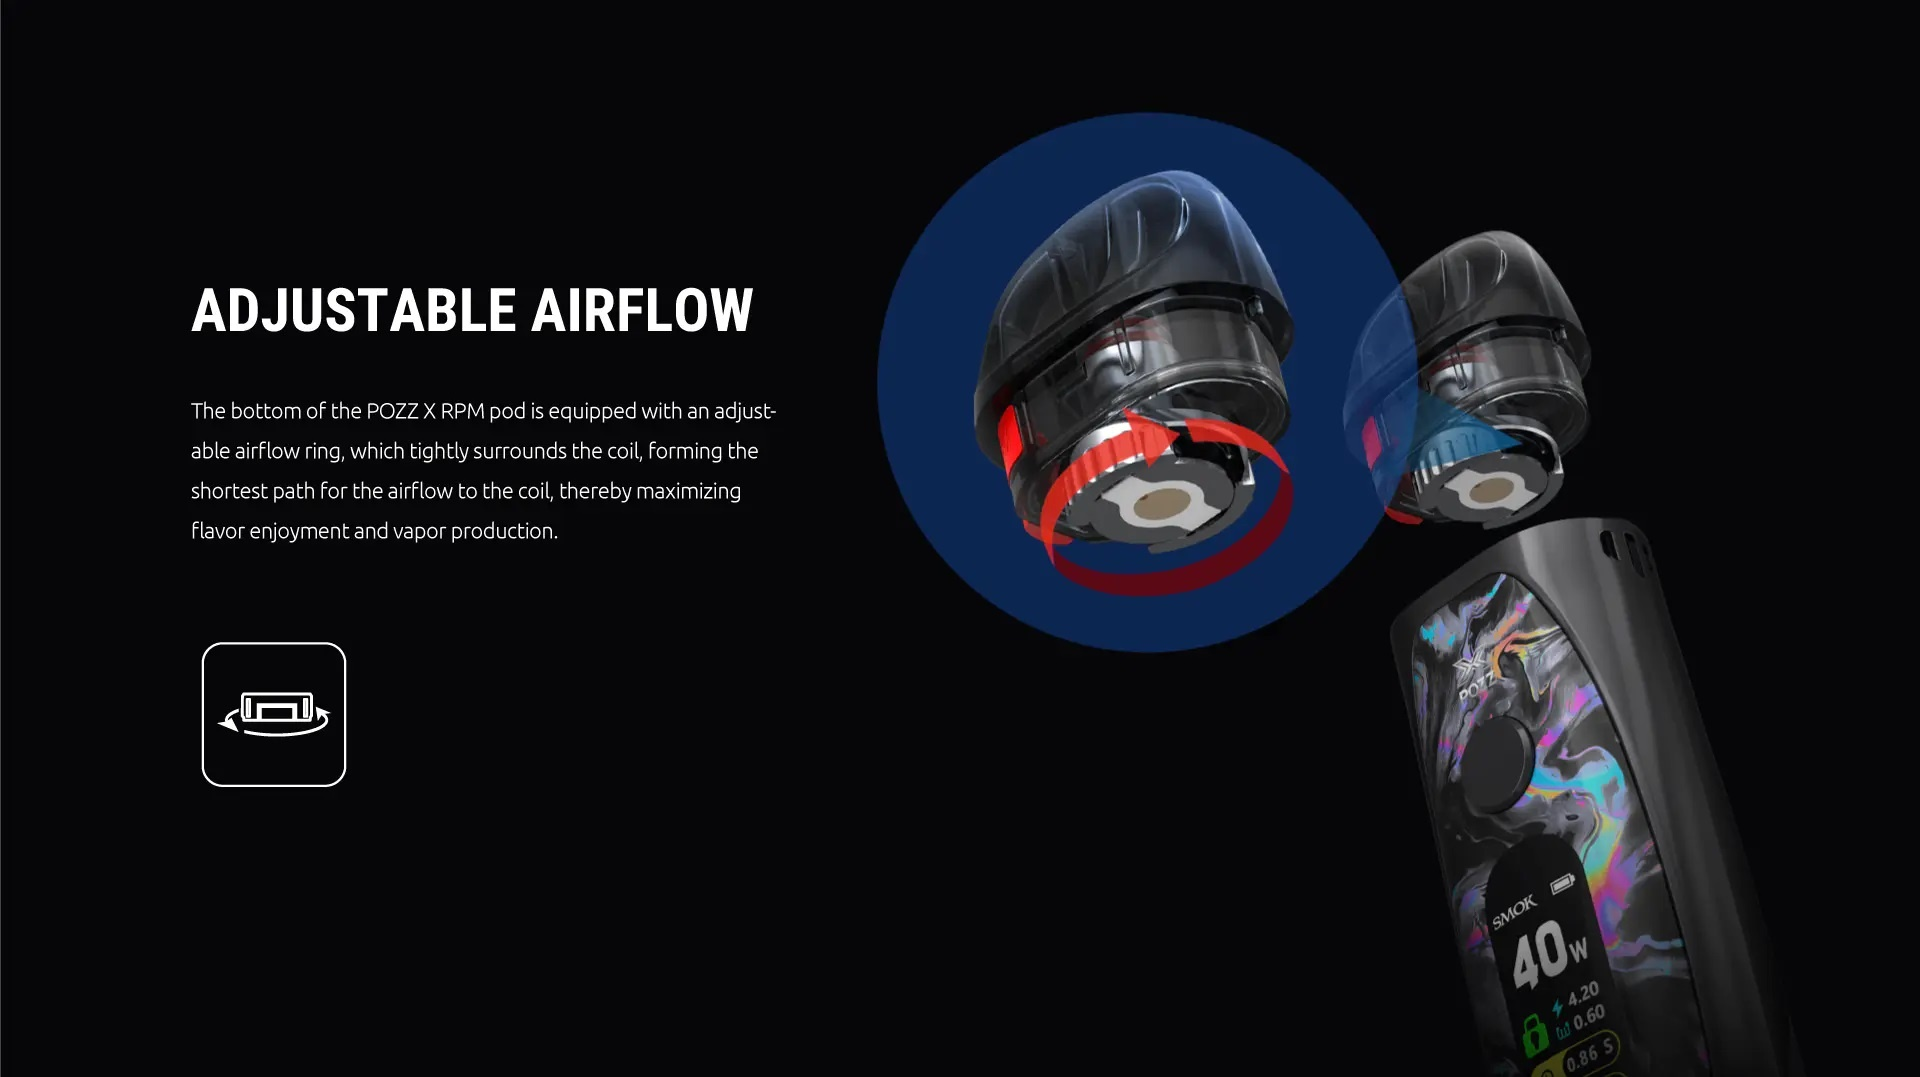 adjustable airflow